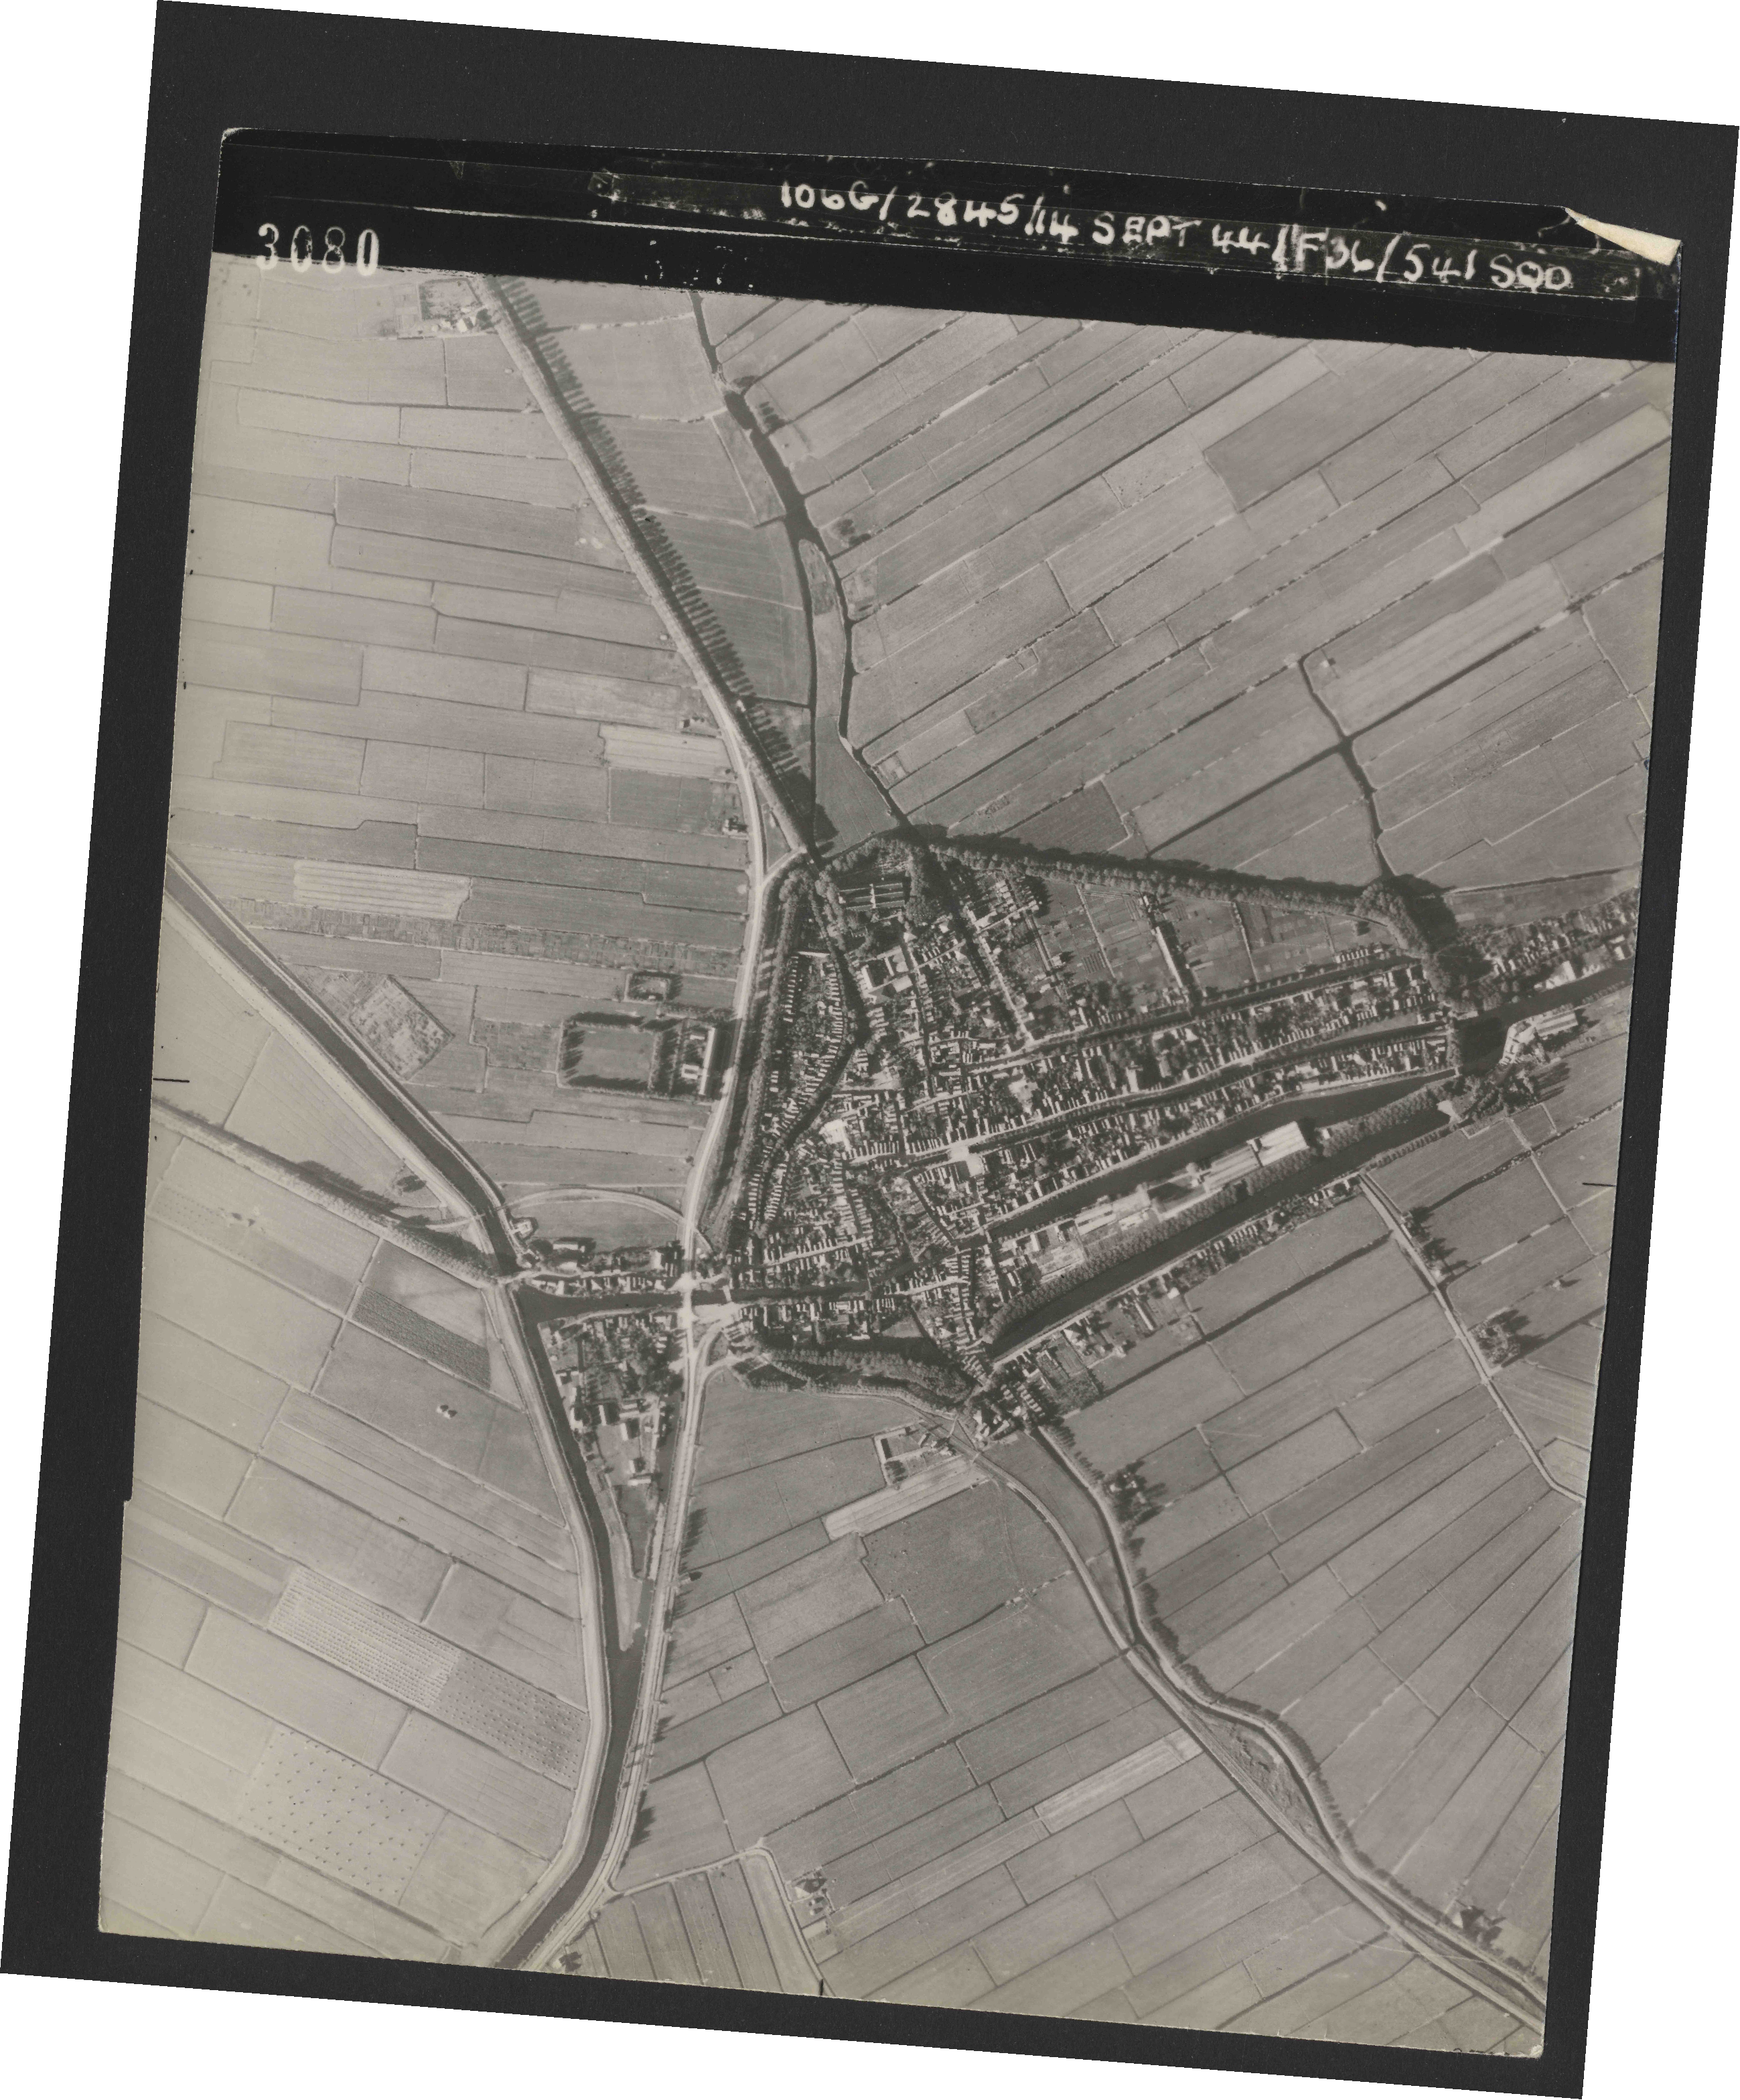 Collection RAF aerial photos 1940-1945 - flight 299, run 03, photo 3080